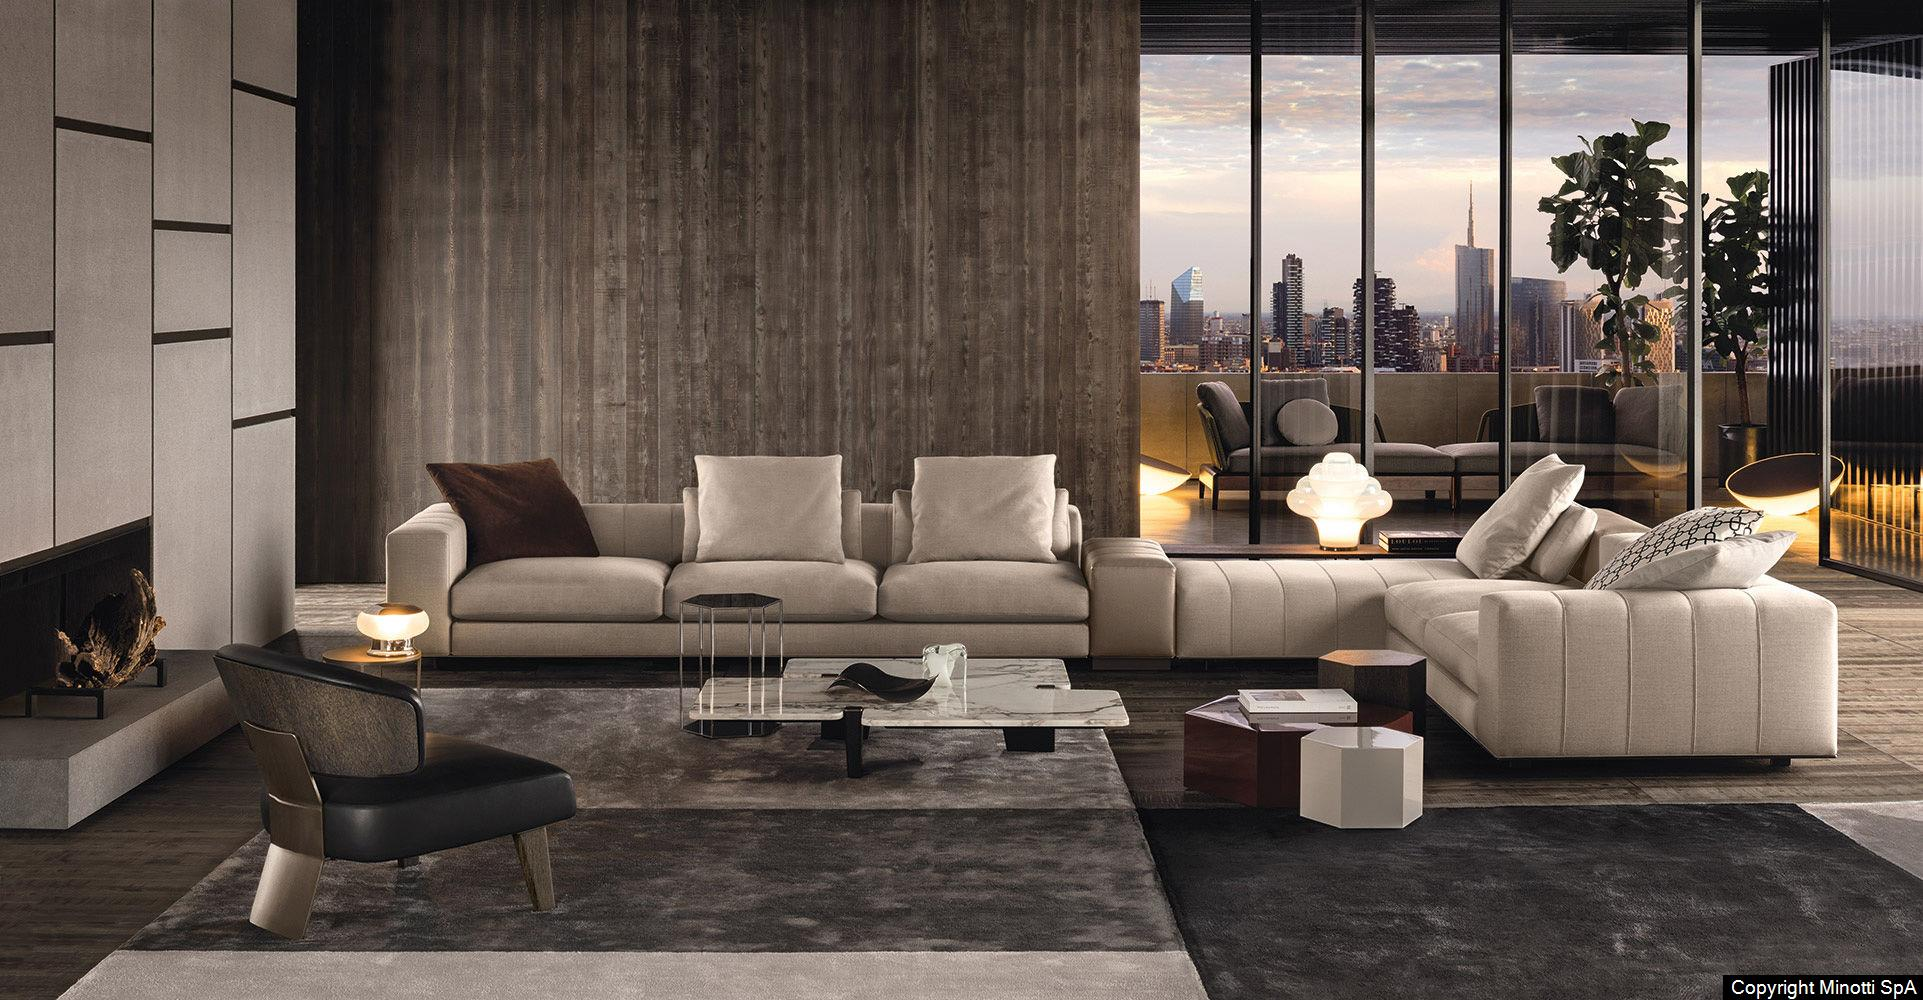 Appartement Interieur Design Minotti - Raw Interiors